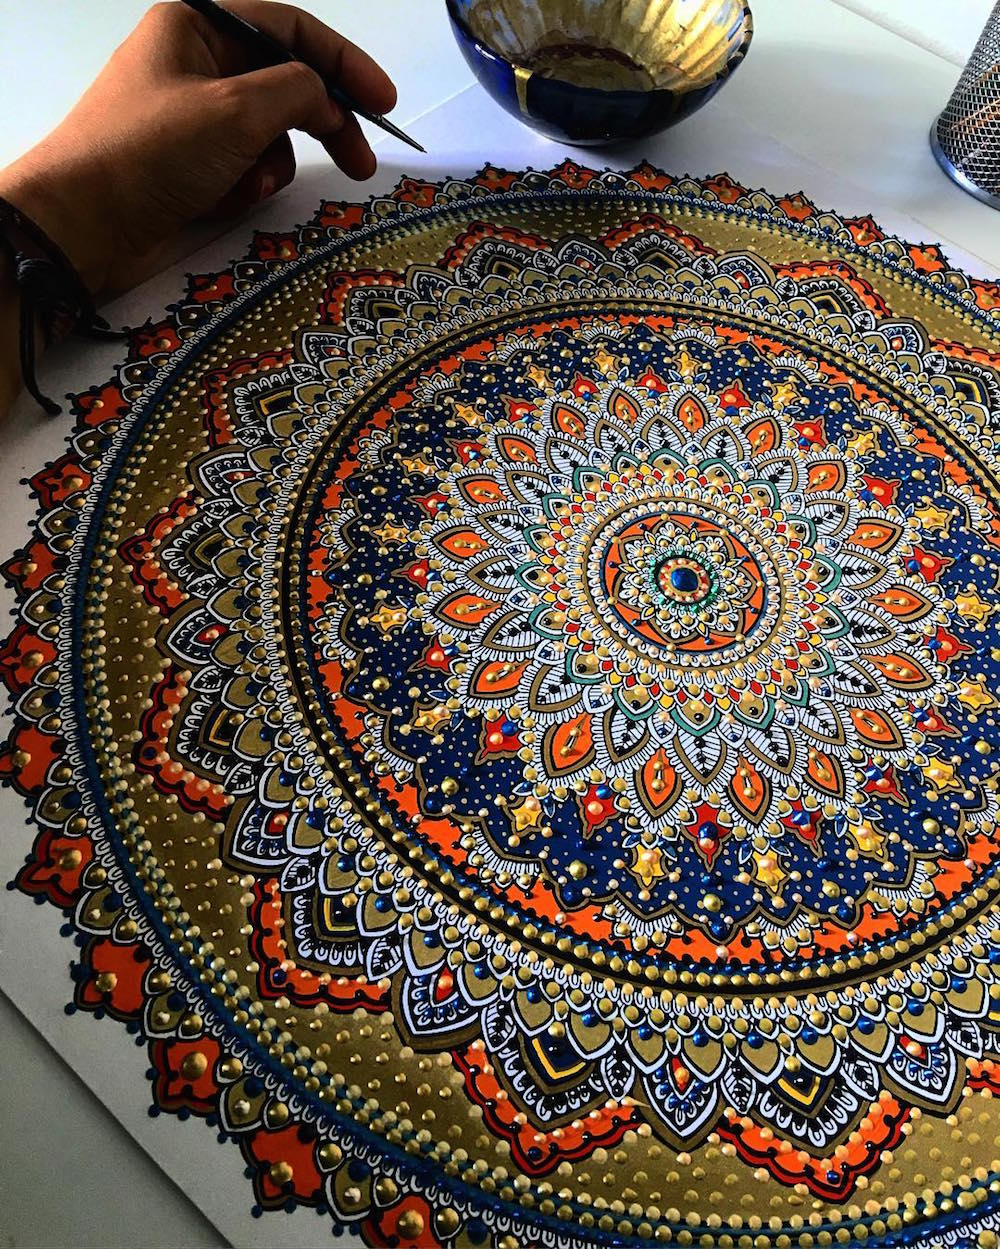 Intricate Mandalas Gilded With Gold By Artist Asmahan A